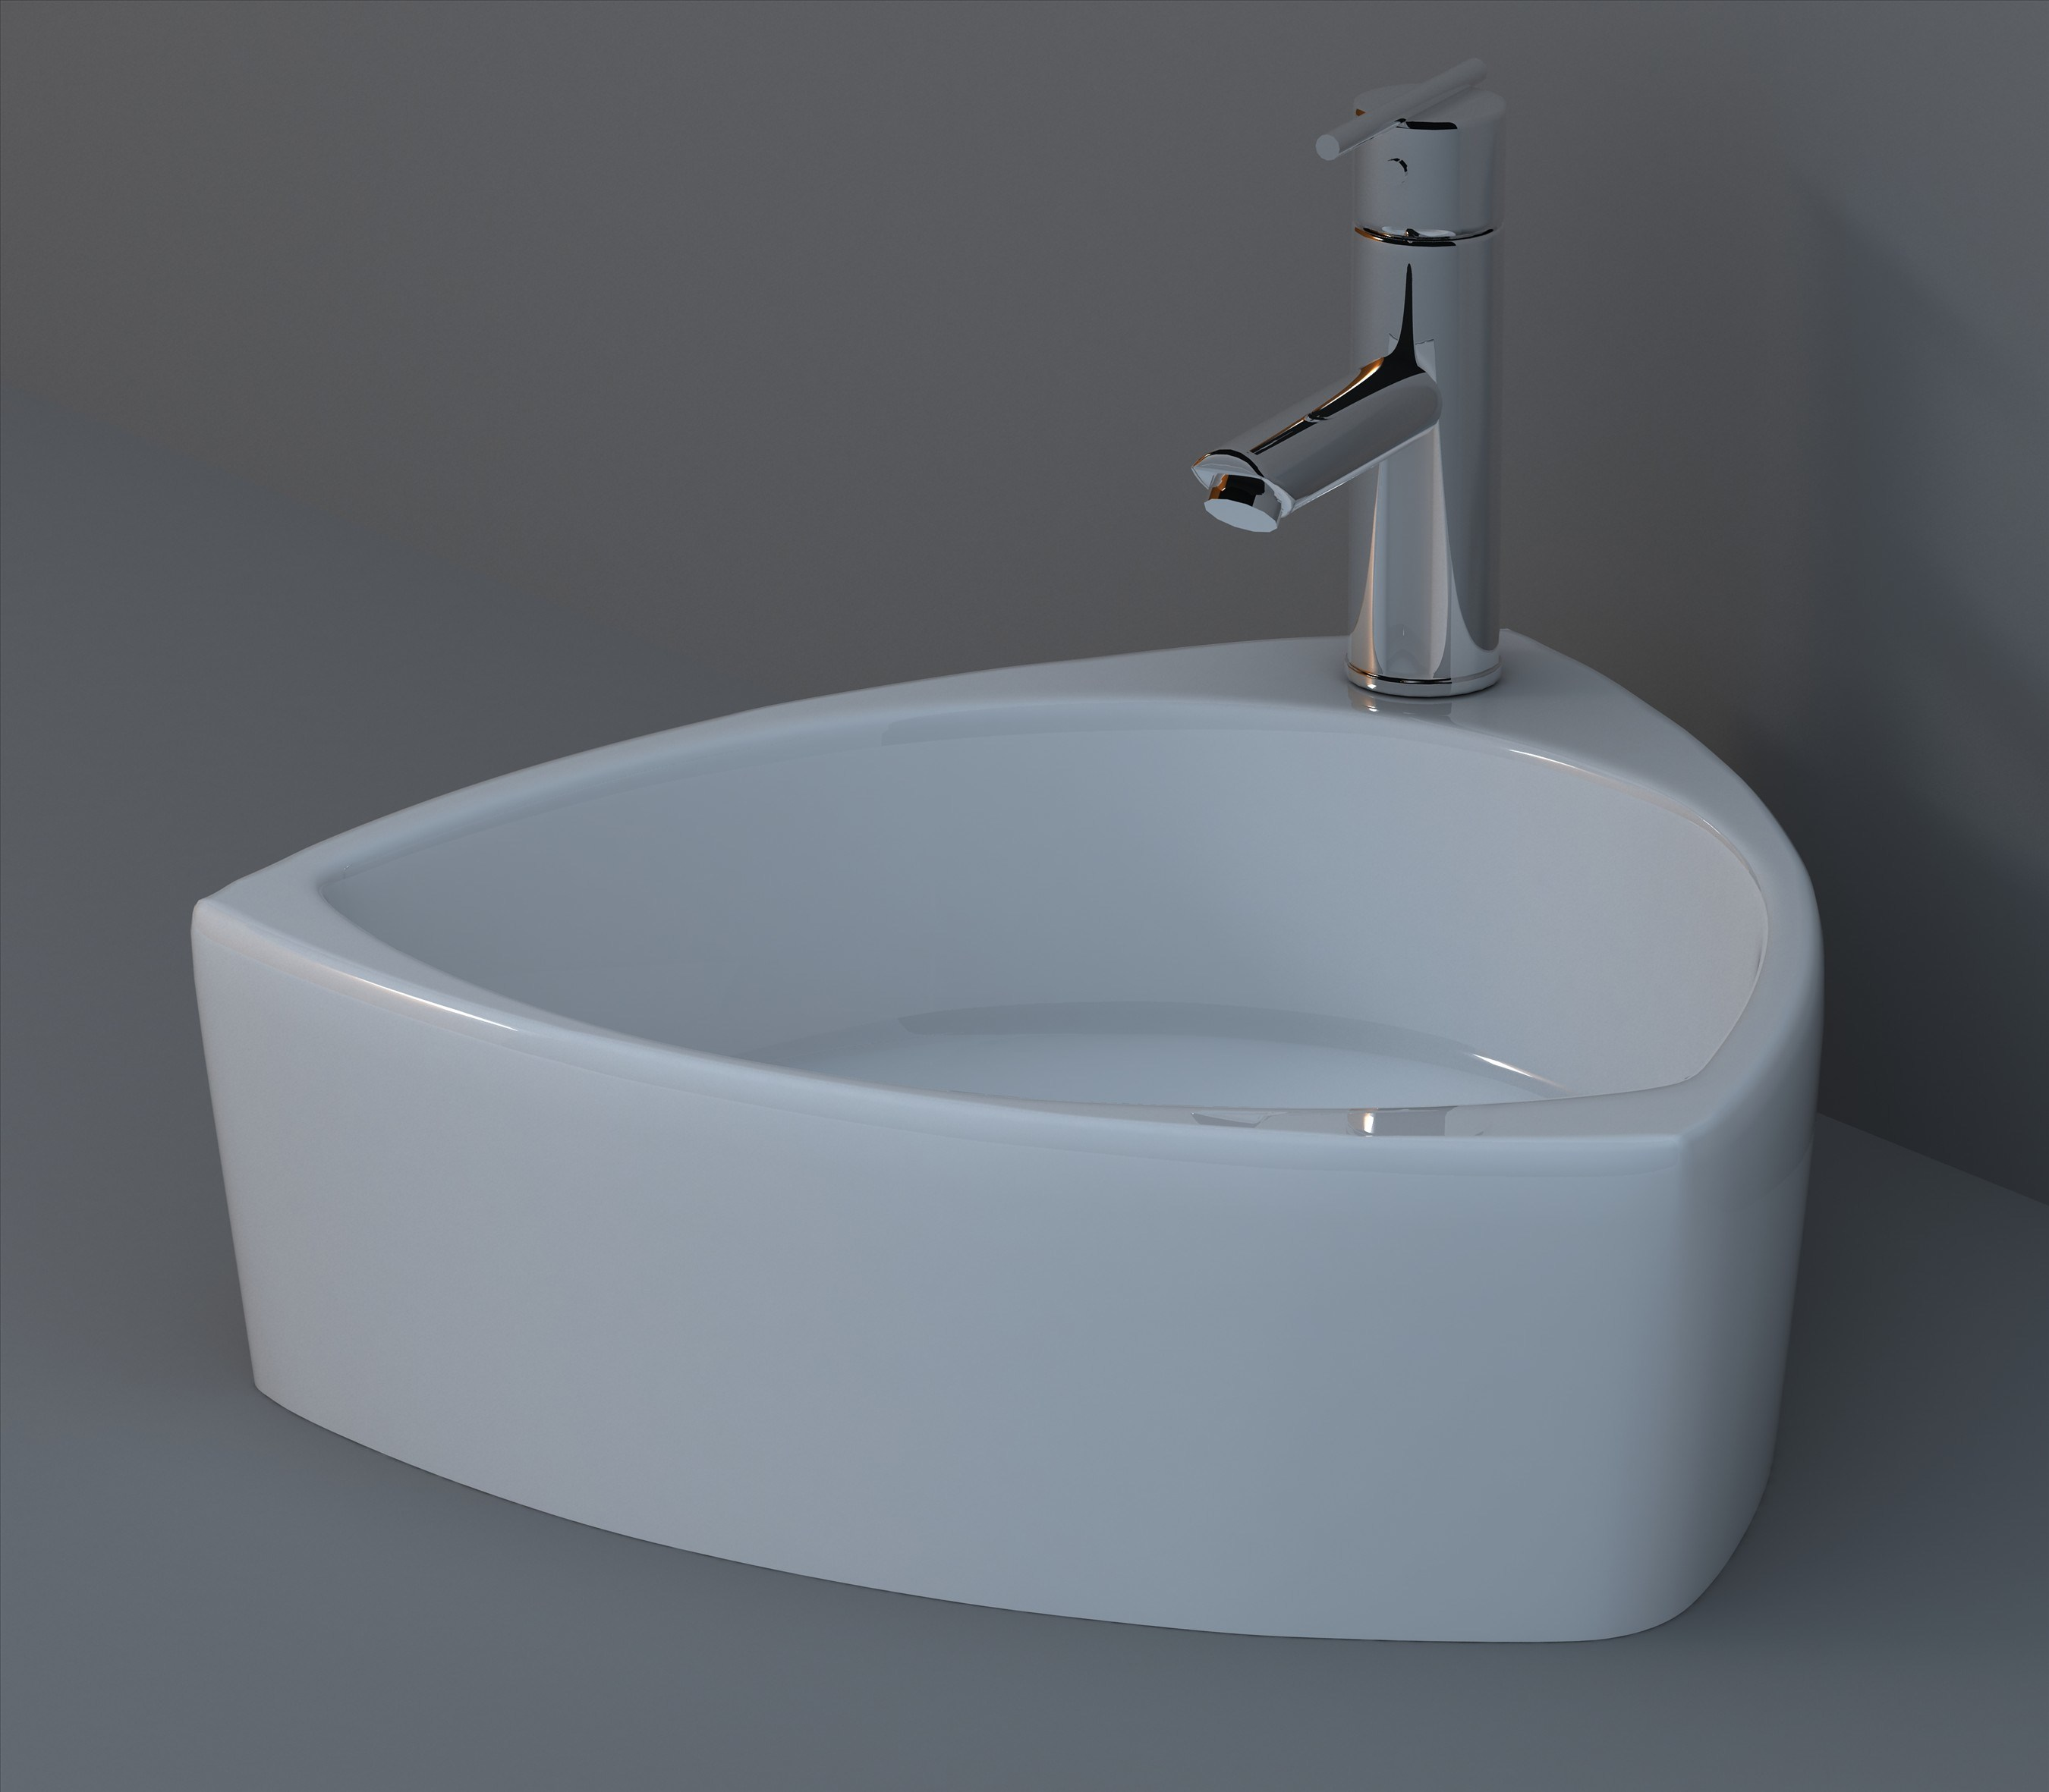 China Ceramic Wash Basin / Countertop Basin (HTM4514) - China Art Basin, Basin